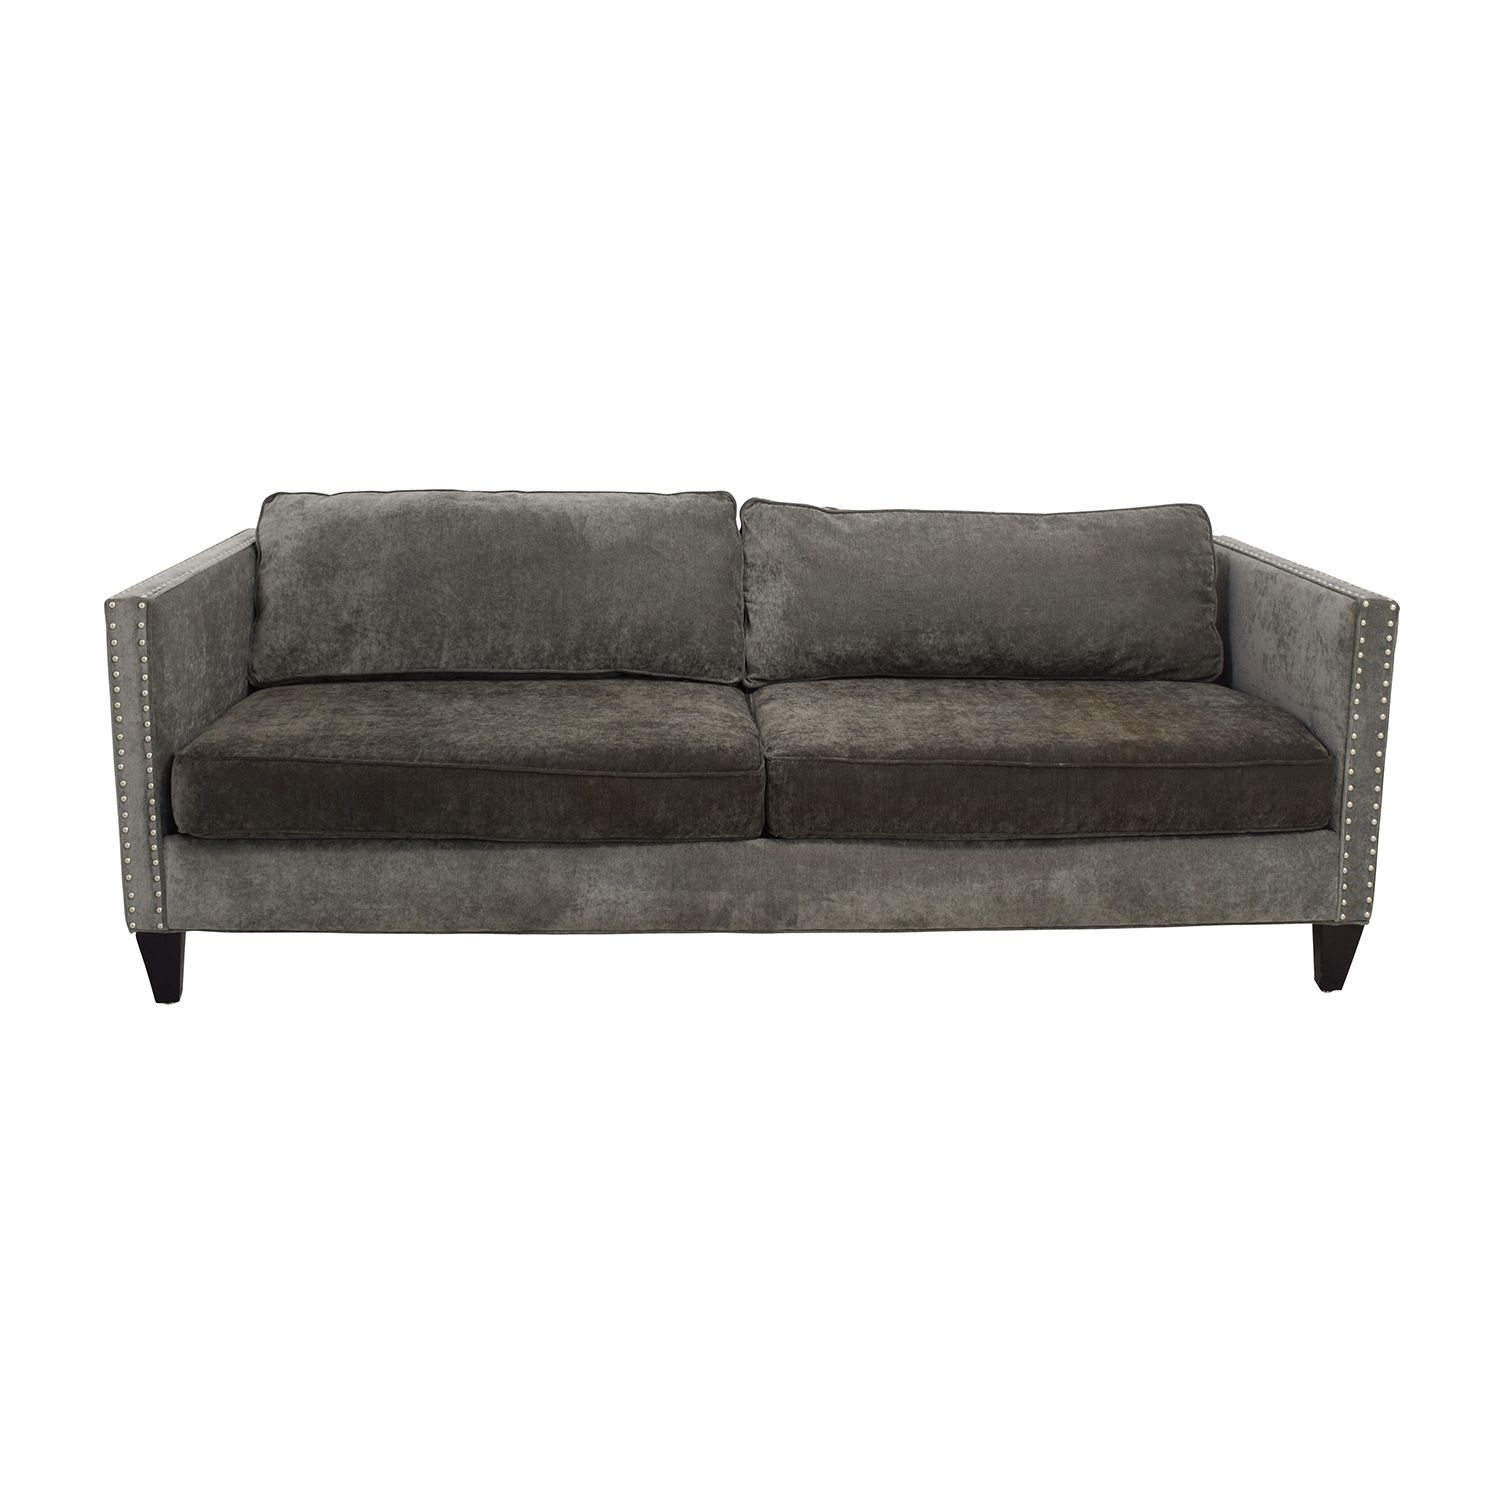 Grey studded sofa sofas magnificent grey sofa living room for Studded leather sofa